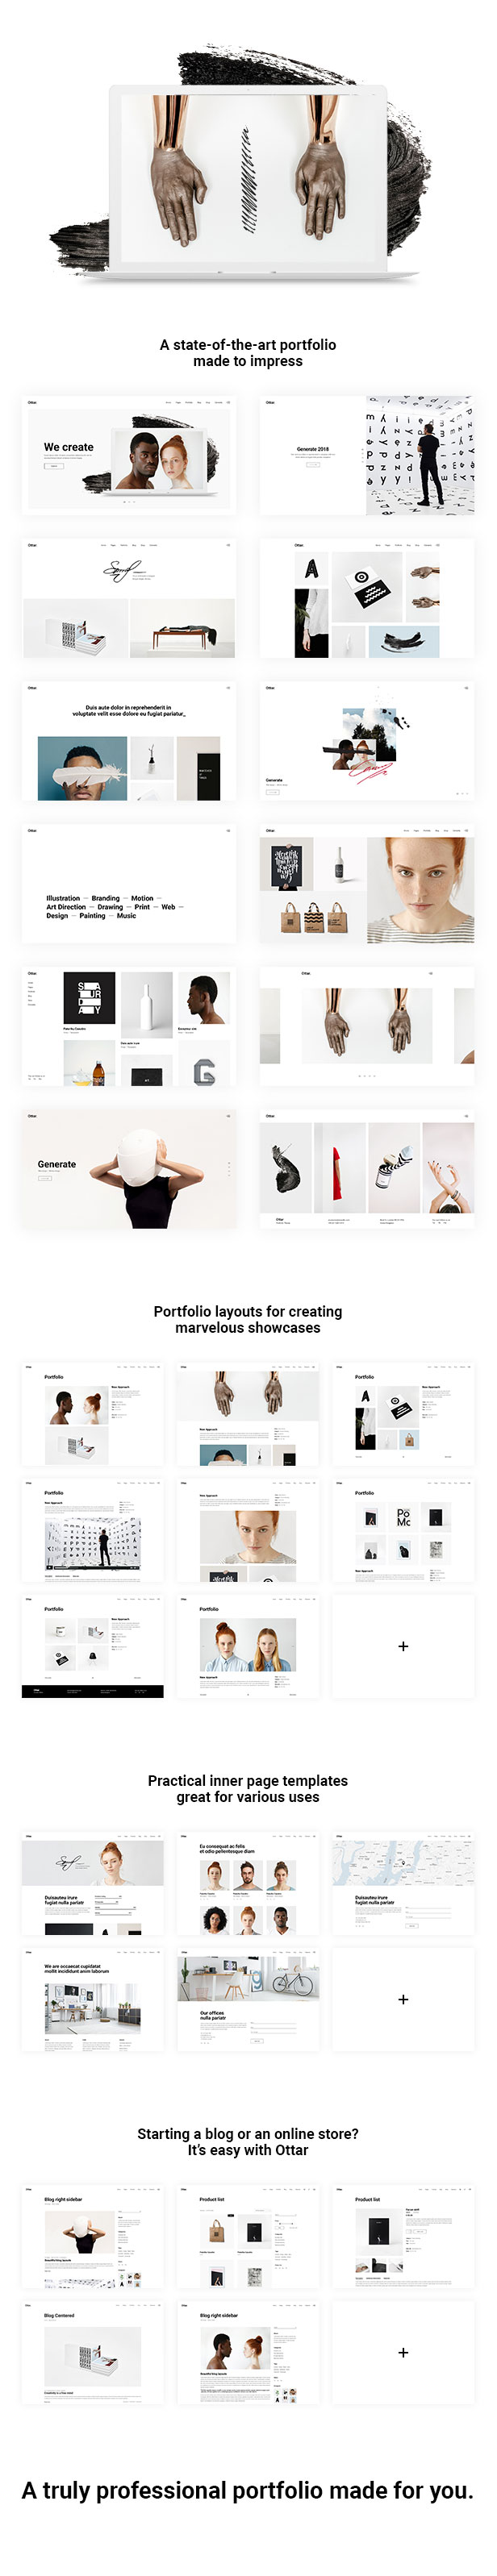 Ottar - Contemporary Portfolio Theme - 1